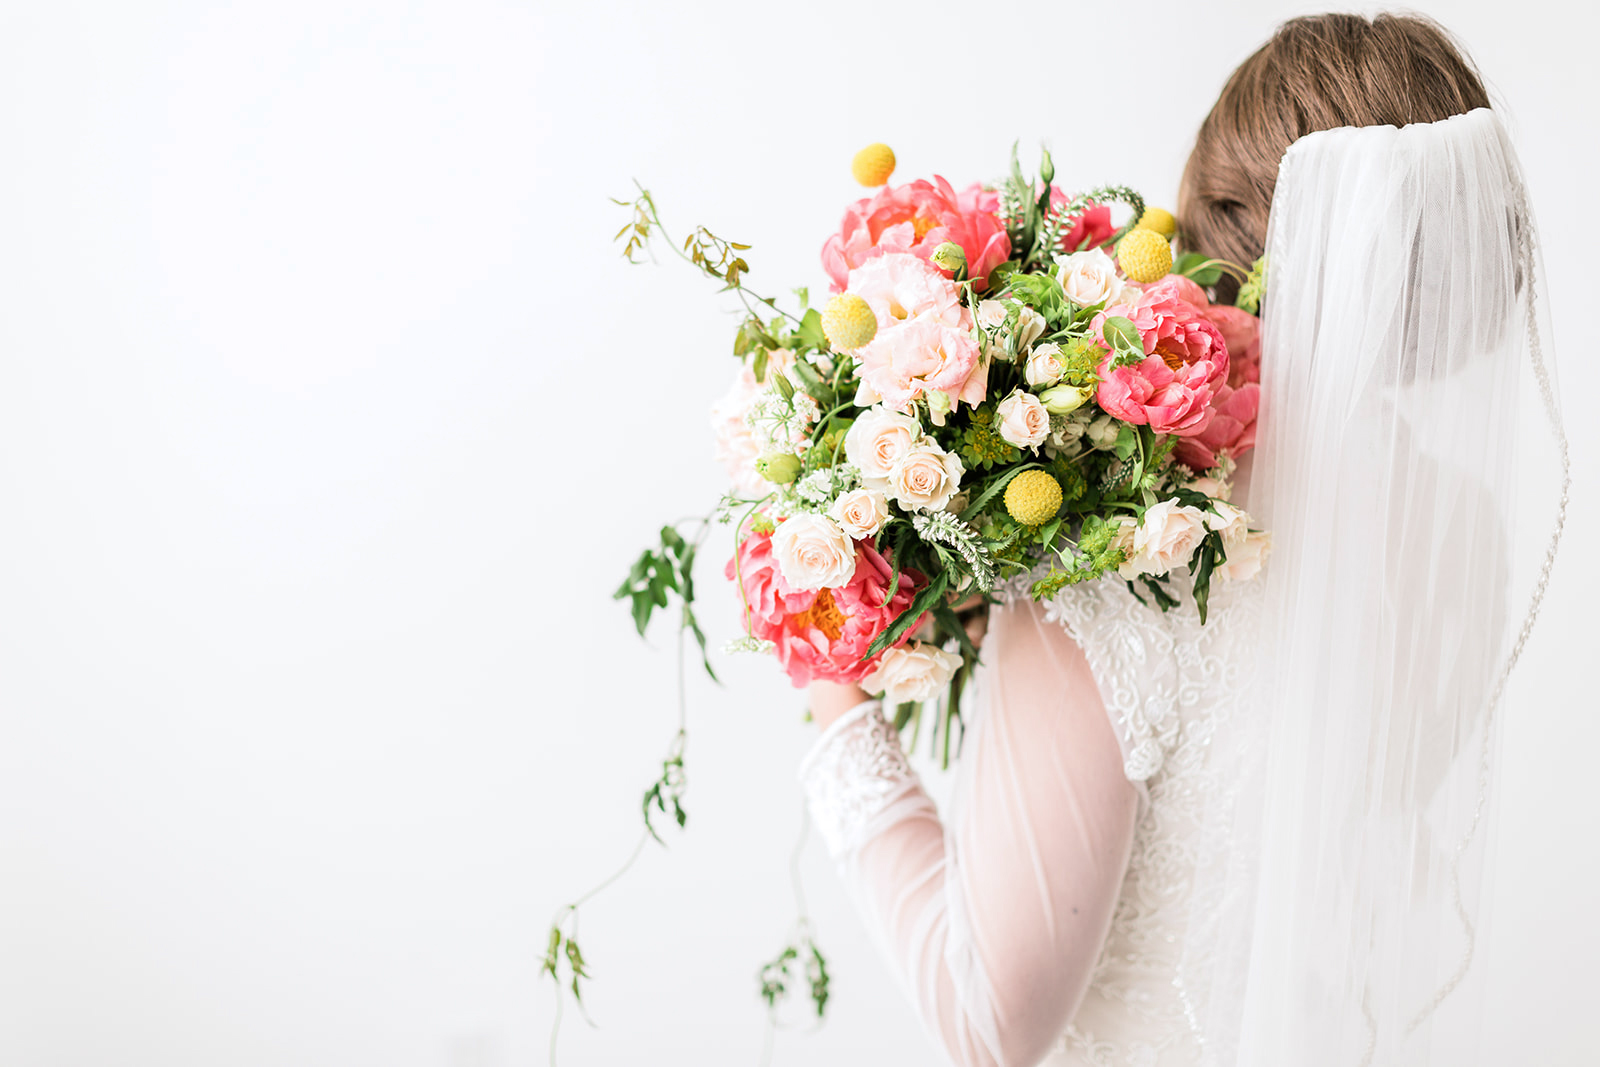 Fine Art Bridal Shoot with a bold, colorful bouquet